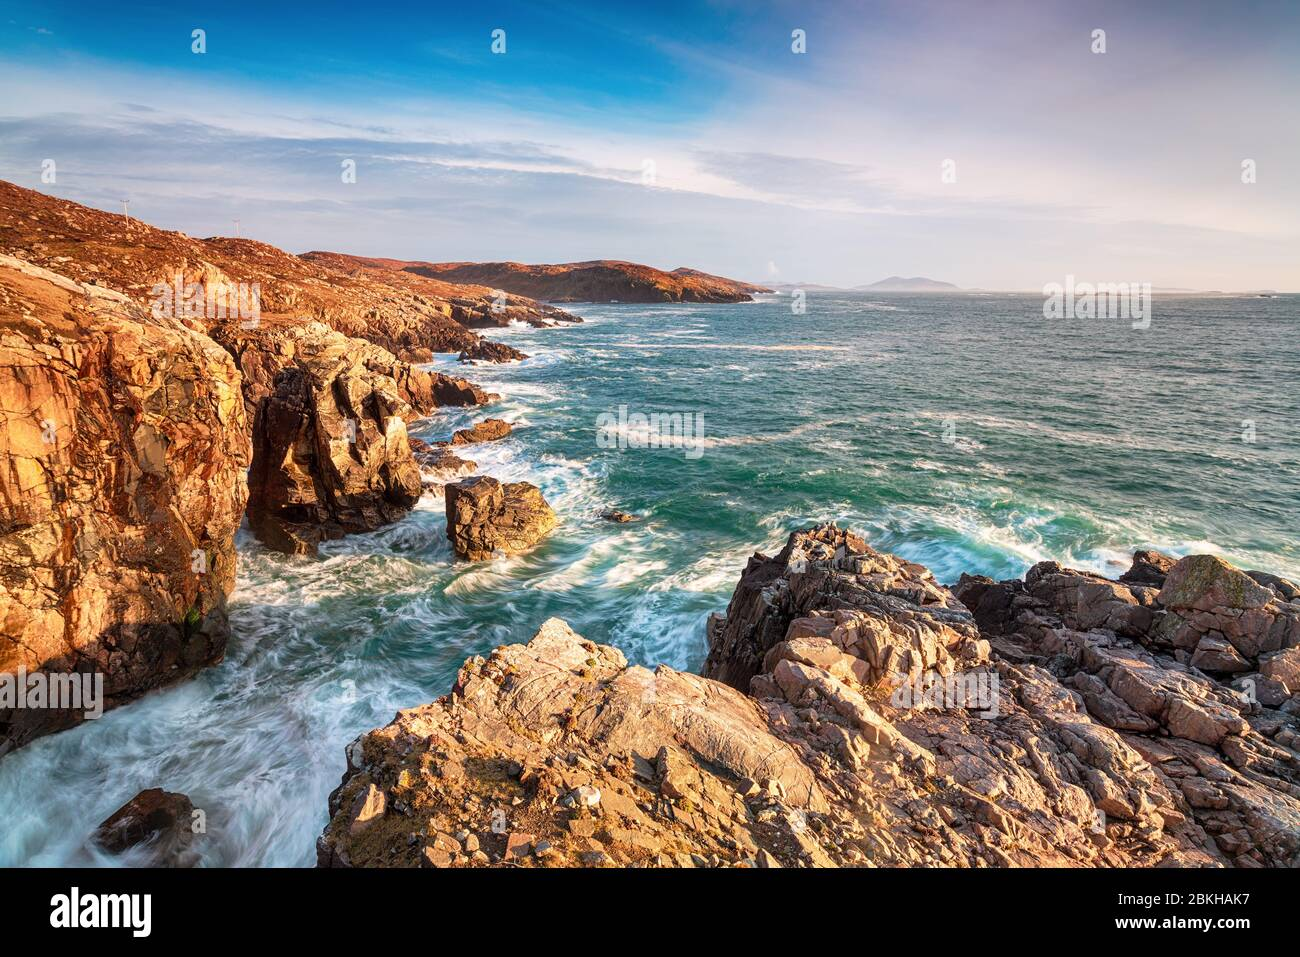 The rugged coastline and cliffs at Hushinish on the west coast of the Isle of Harris in the Outer hebrides of Scotland Stock Photo